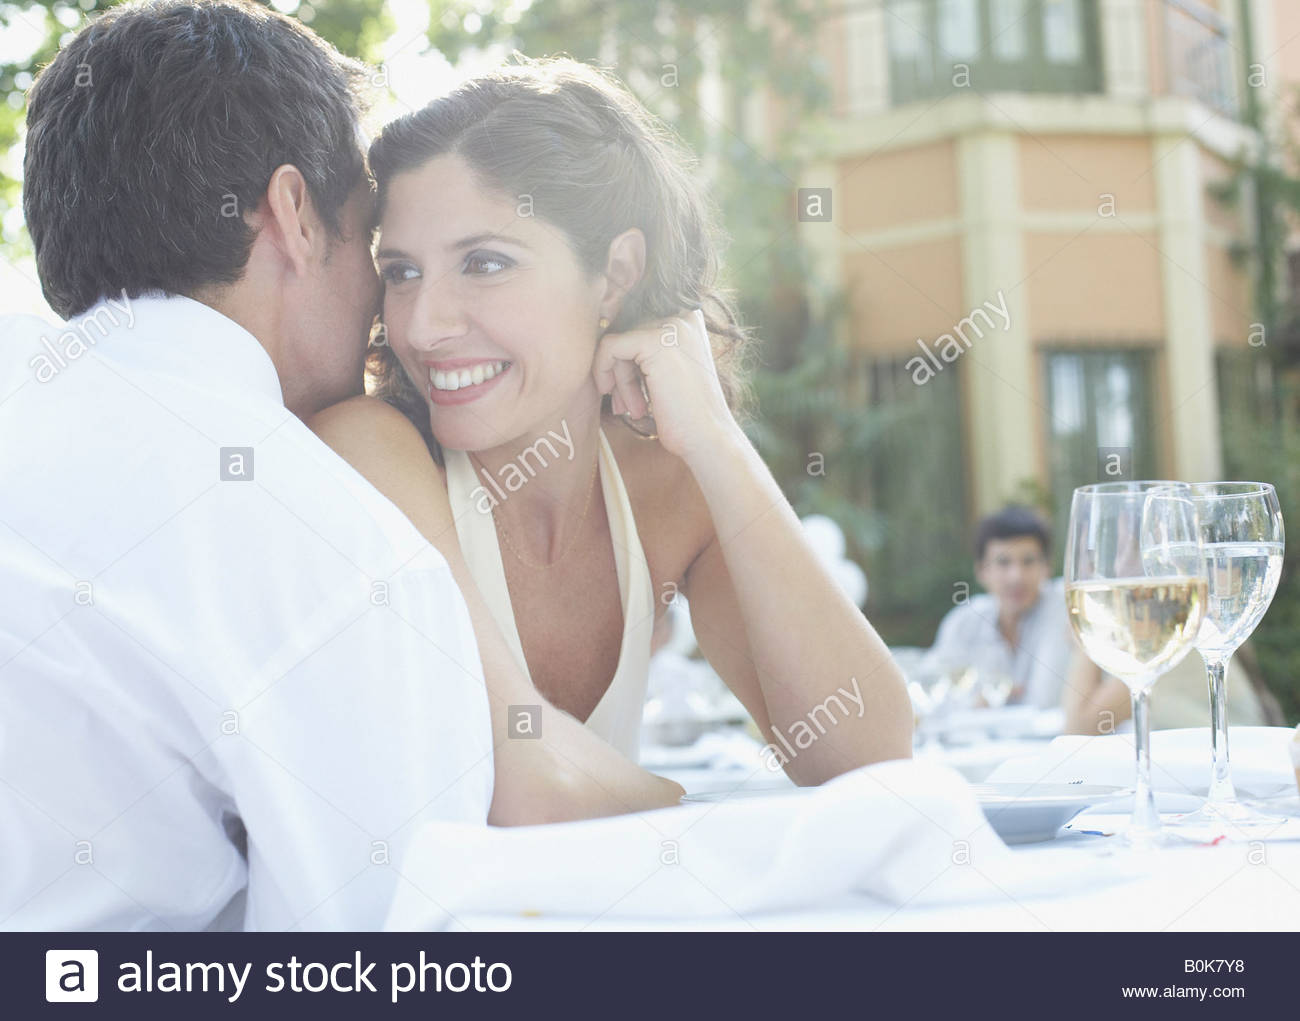 Couple at outdoor party whispering and smiling - Stock Image